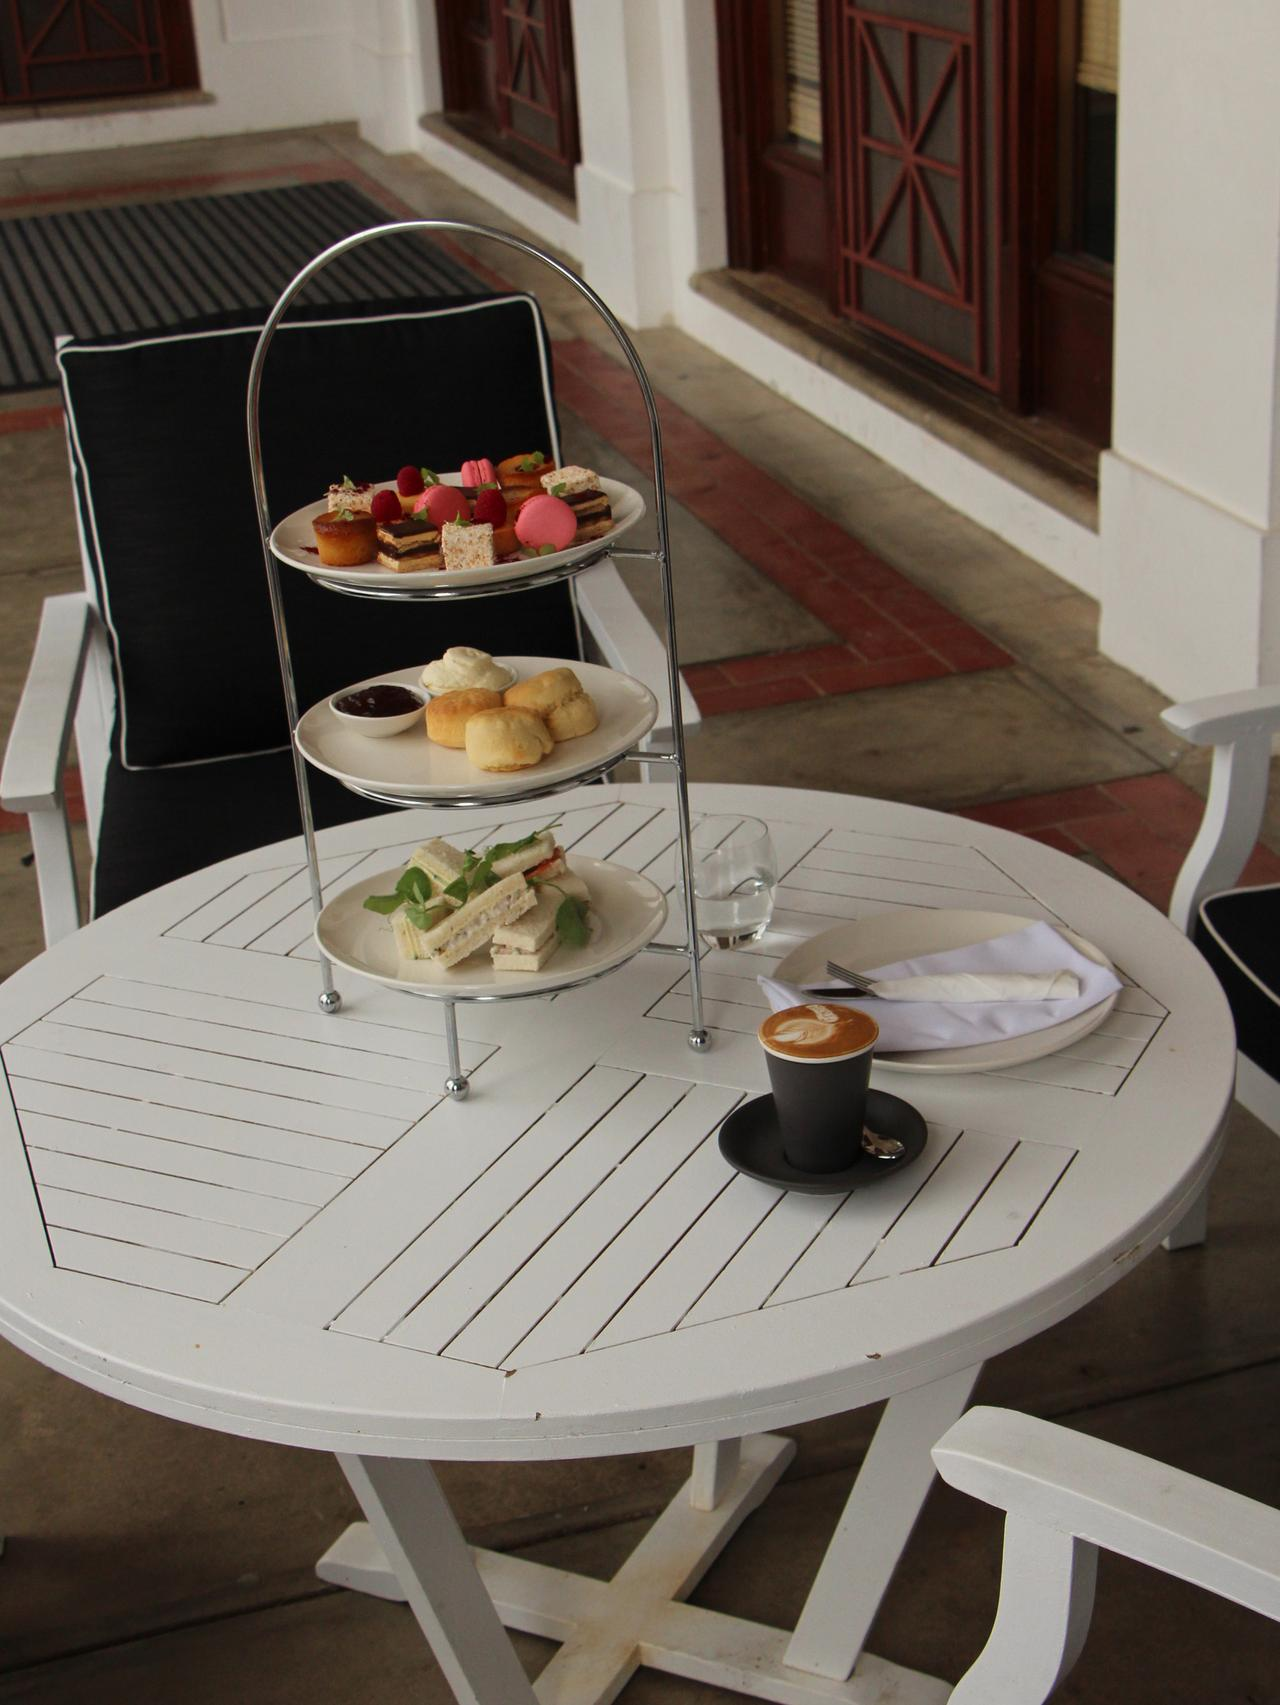 Supplied Travel Afternoon tea at Old Parliament House in Canberra. Pic Sarah Nicholson